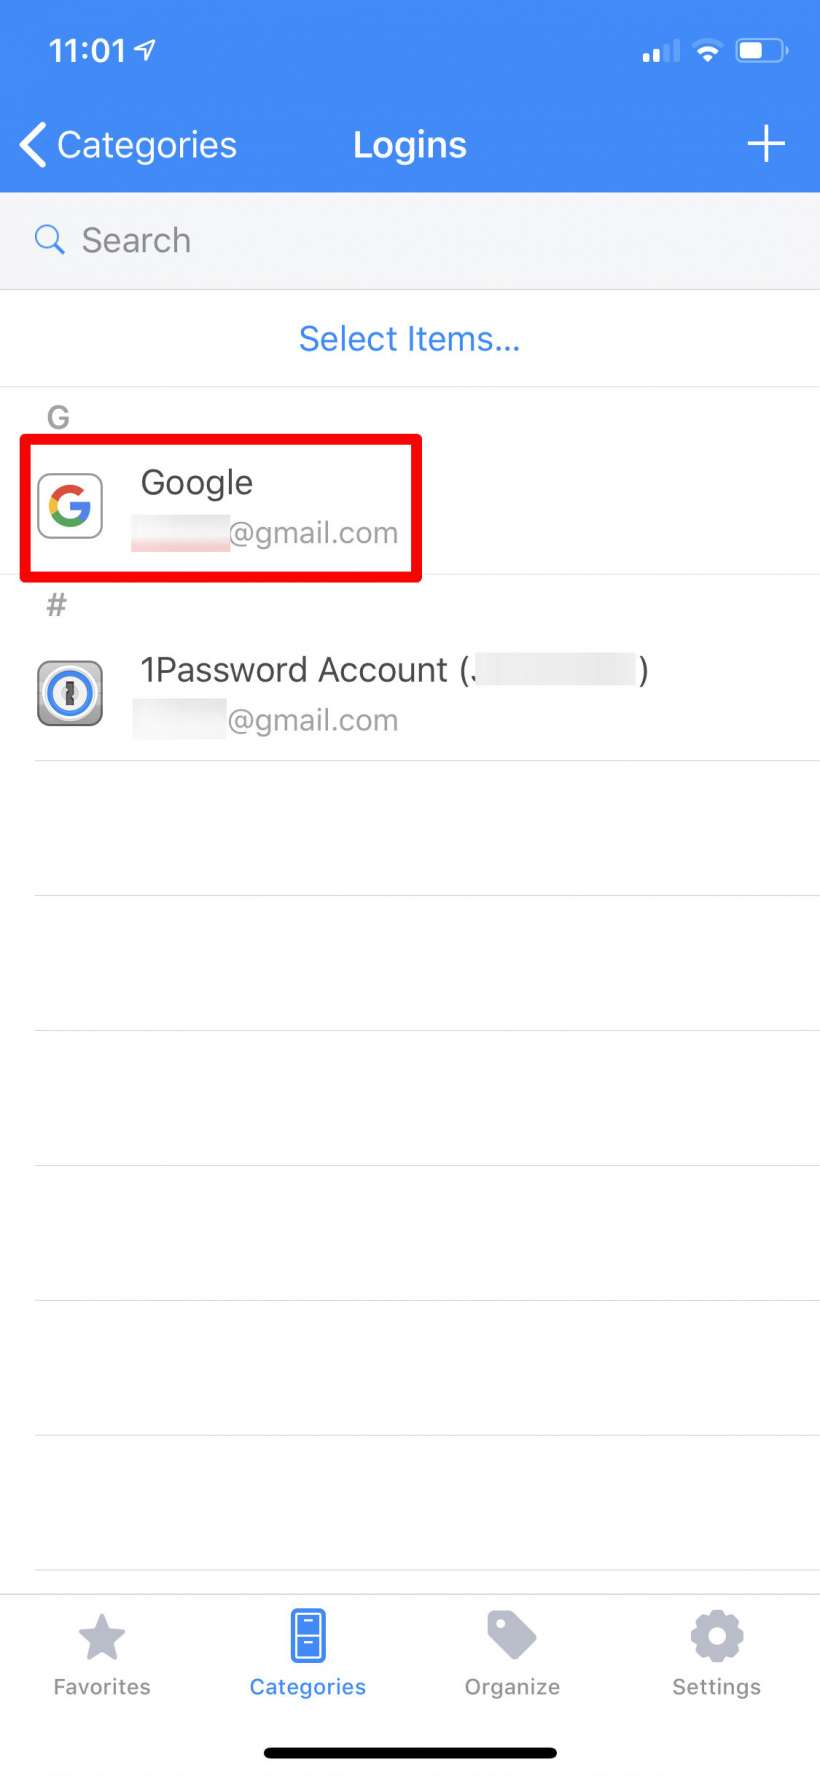 How to get started using 1Password to manage your logins and passwords on iPhone and iPad and Mac.